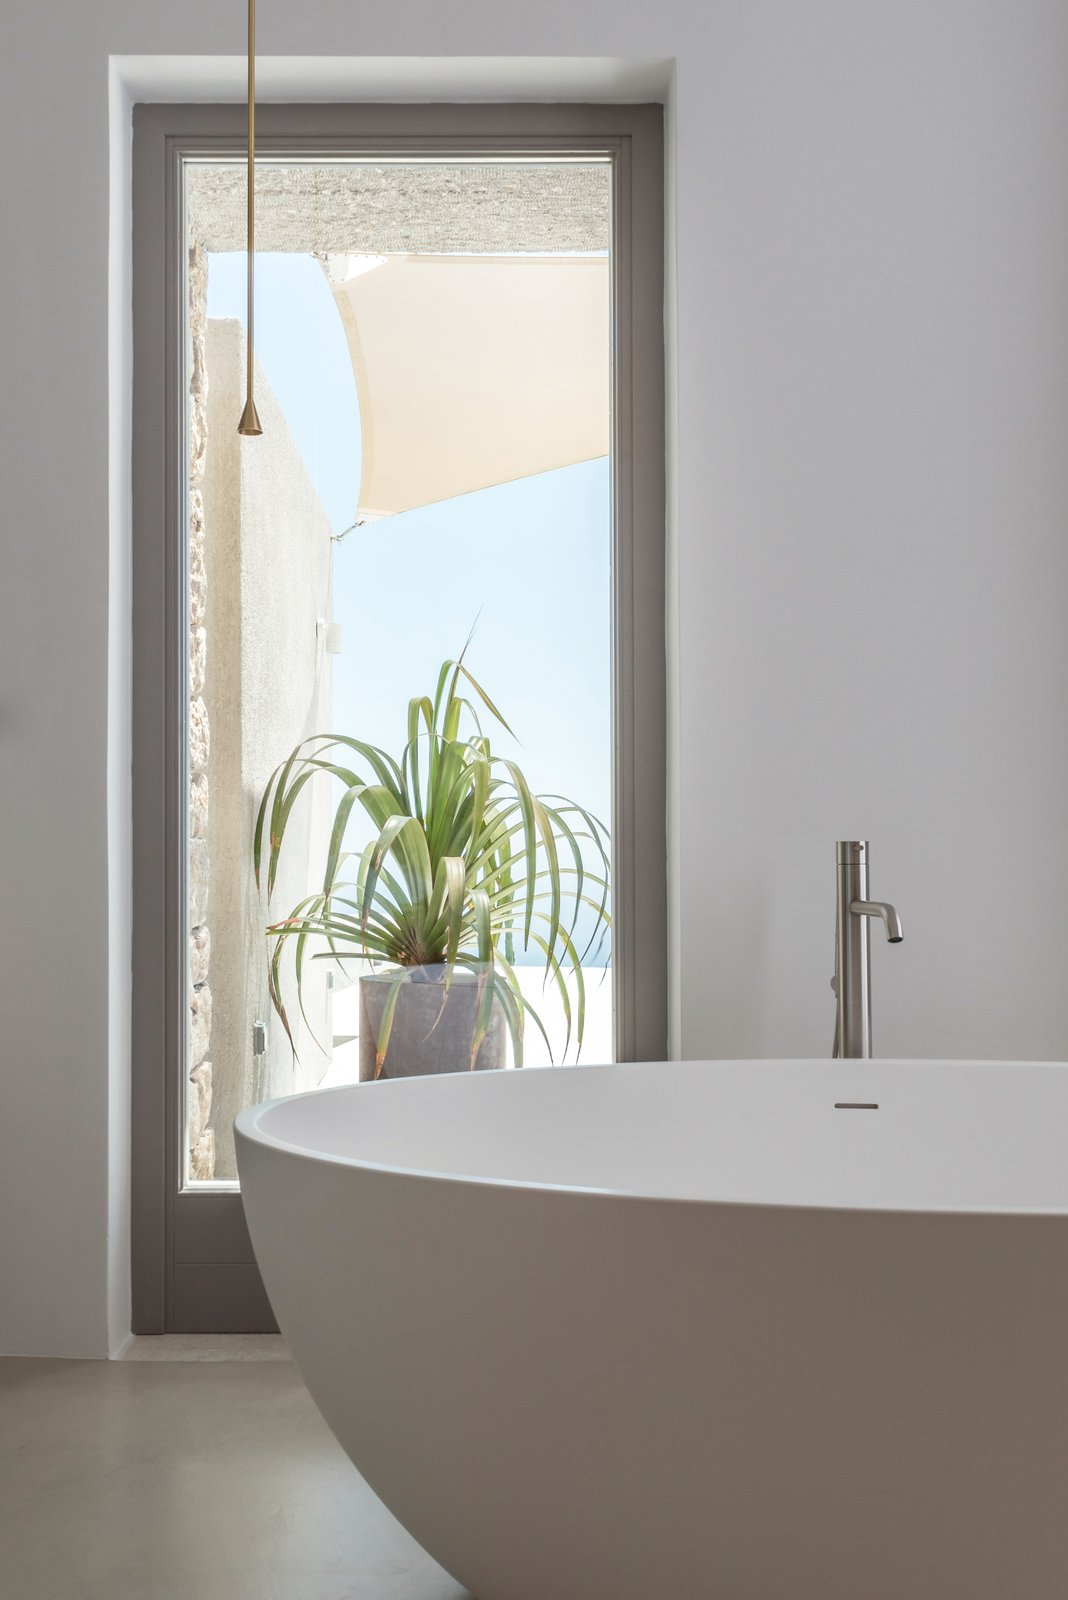 Bath, Freestanding, Soaking, Pendant, and Concrete This bathtub looks out to the outdoor terrace.  Best Bath Soaking Pendant Freestanding Photos from A Modern Home Is Gently Slotted Into a Steep Slope in Santorini